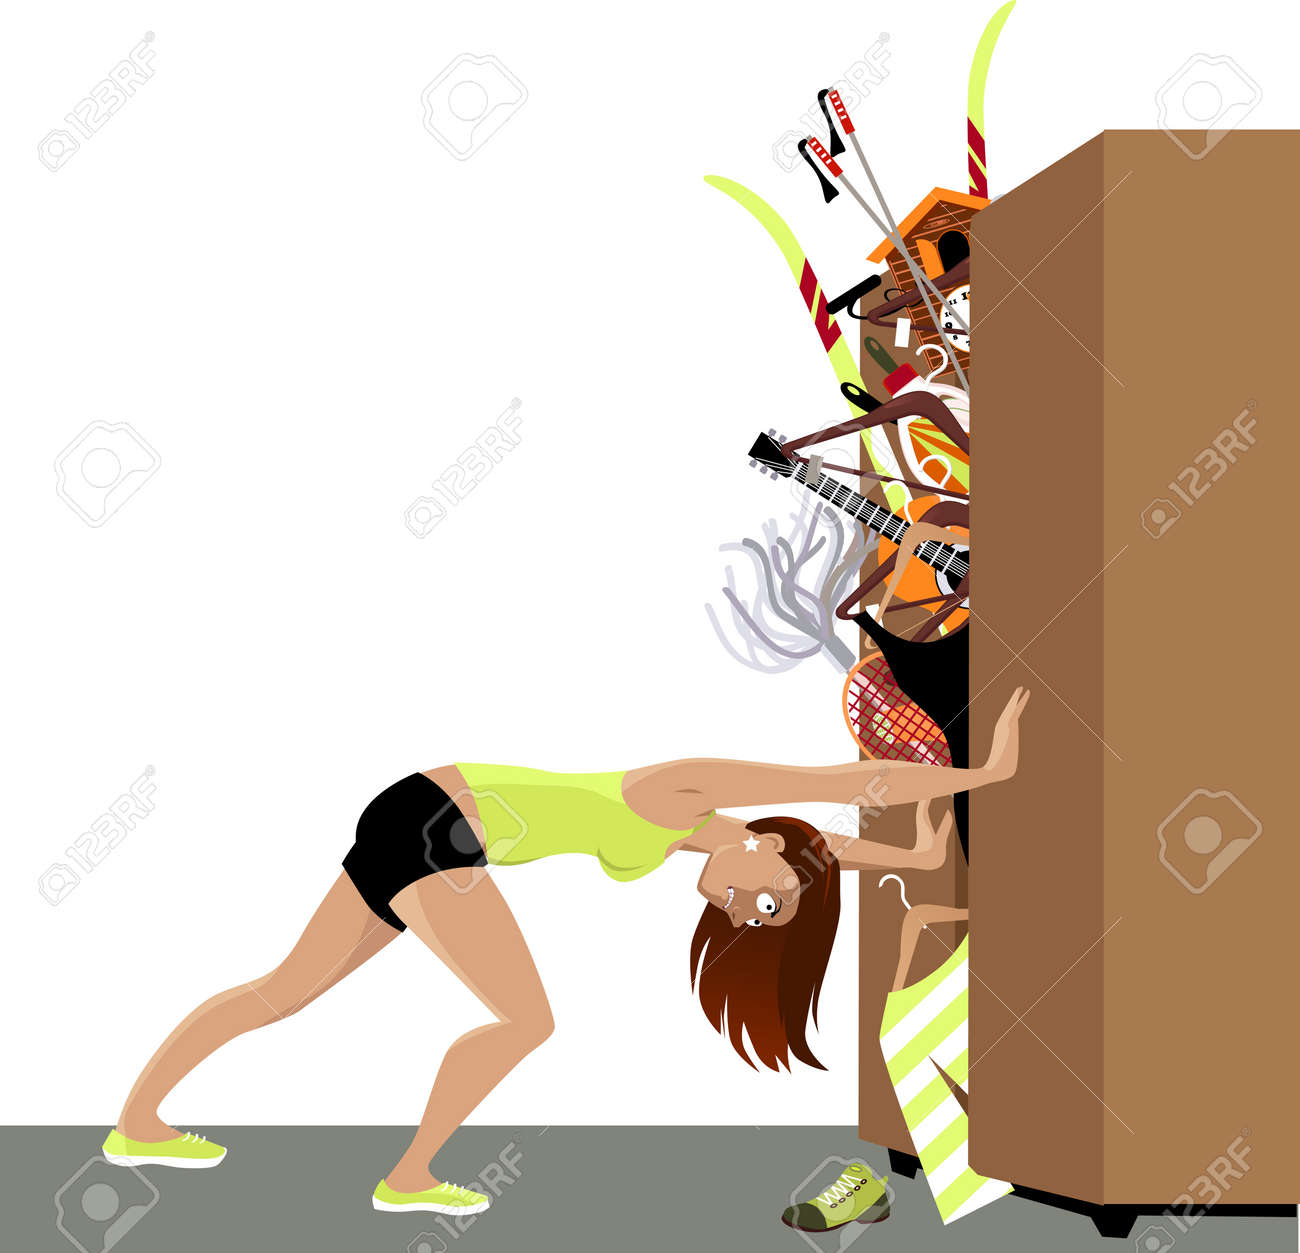 Wardrobe is bursting from stuff, woman trying to hold the doors closed, EPS 8 vector illustration - 76535389